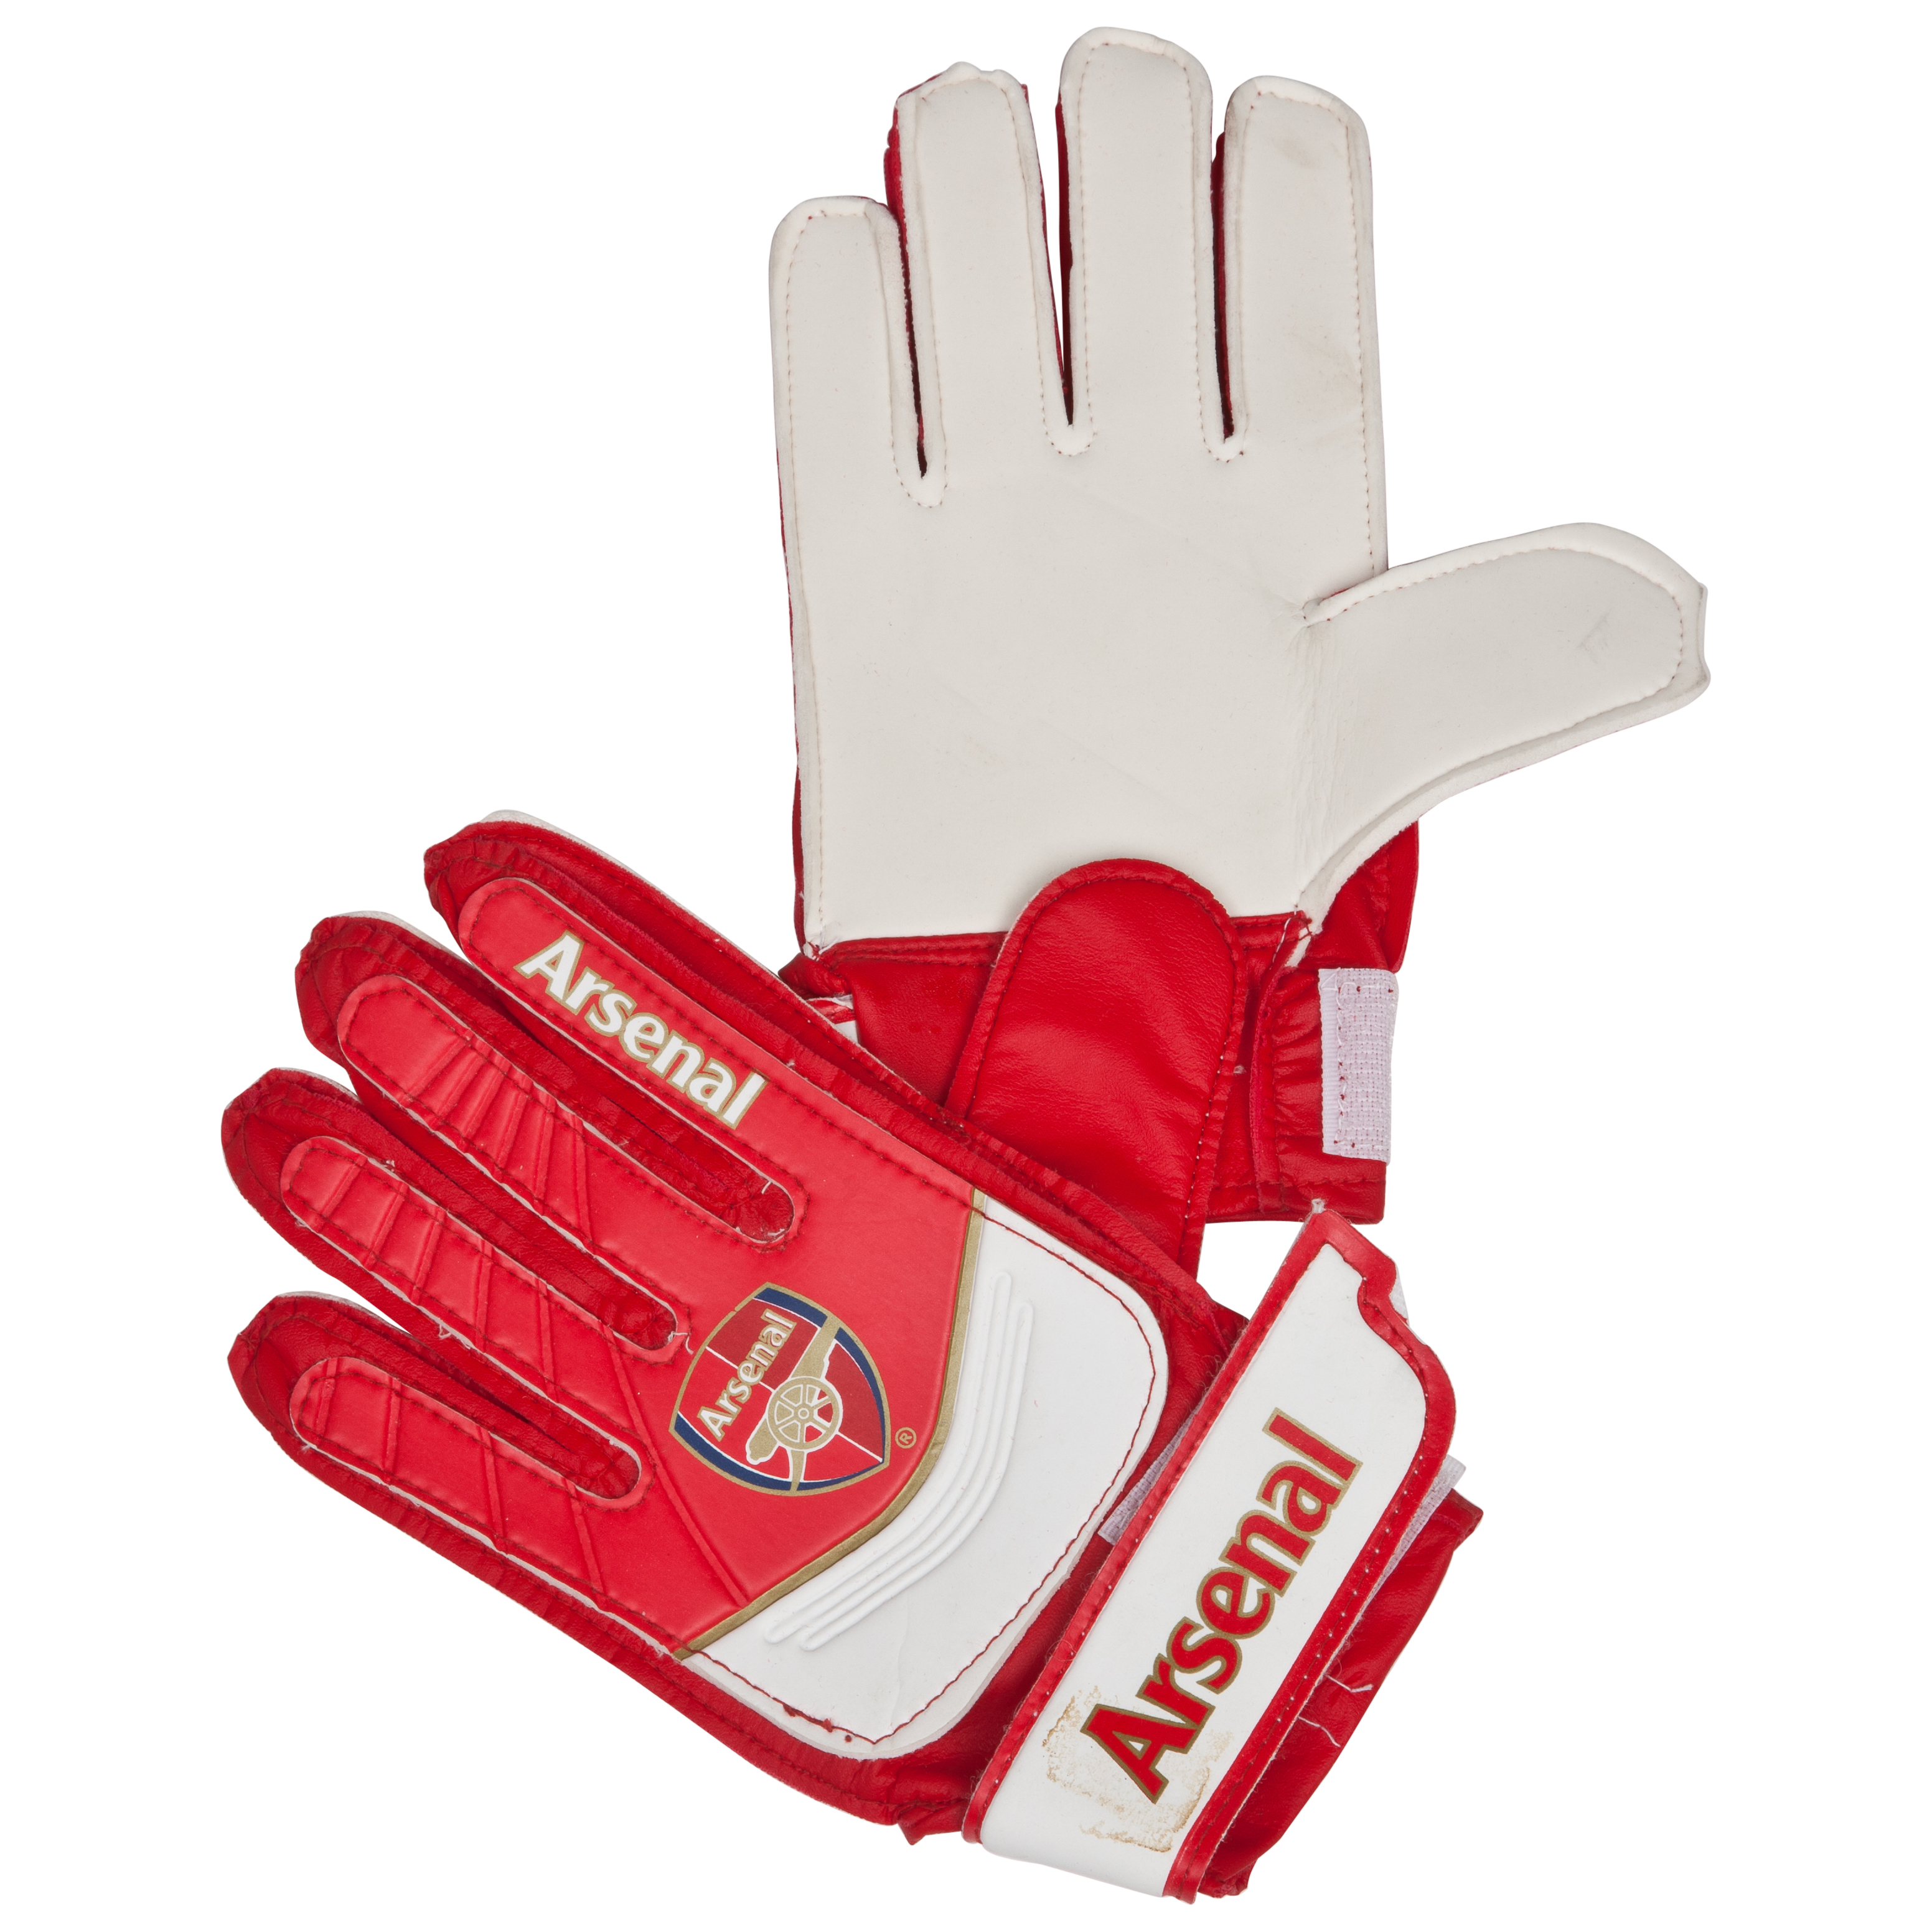 Arsenal Goalkeeper Gloves